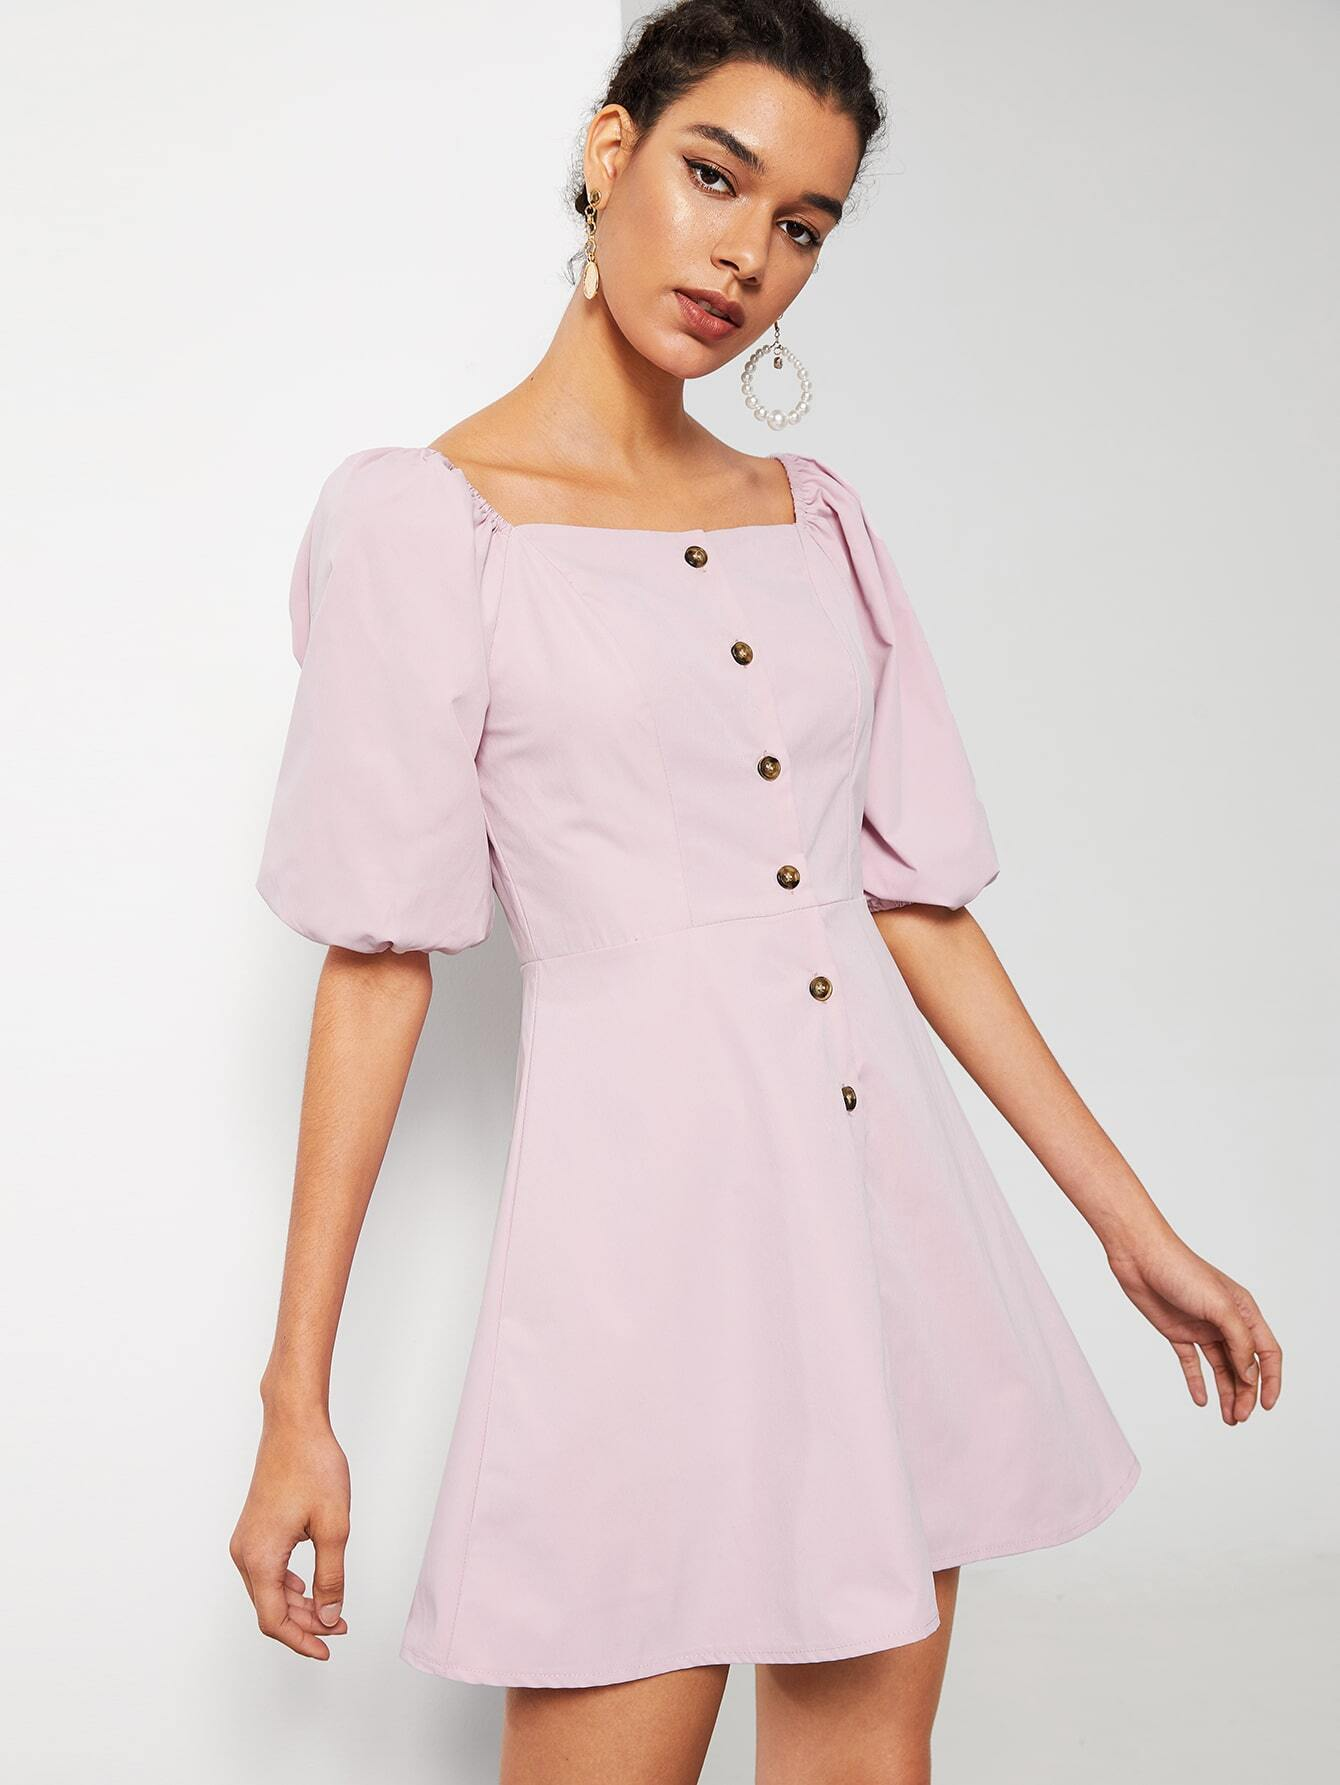 Button Front Square Neck Dress by Romwe